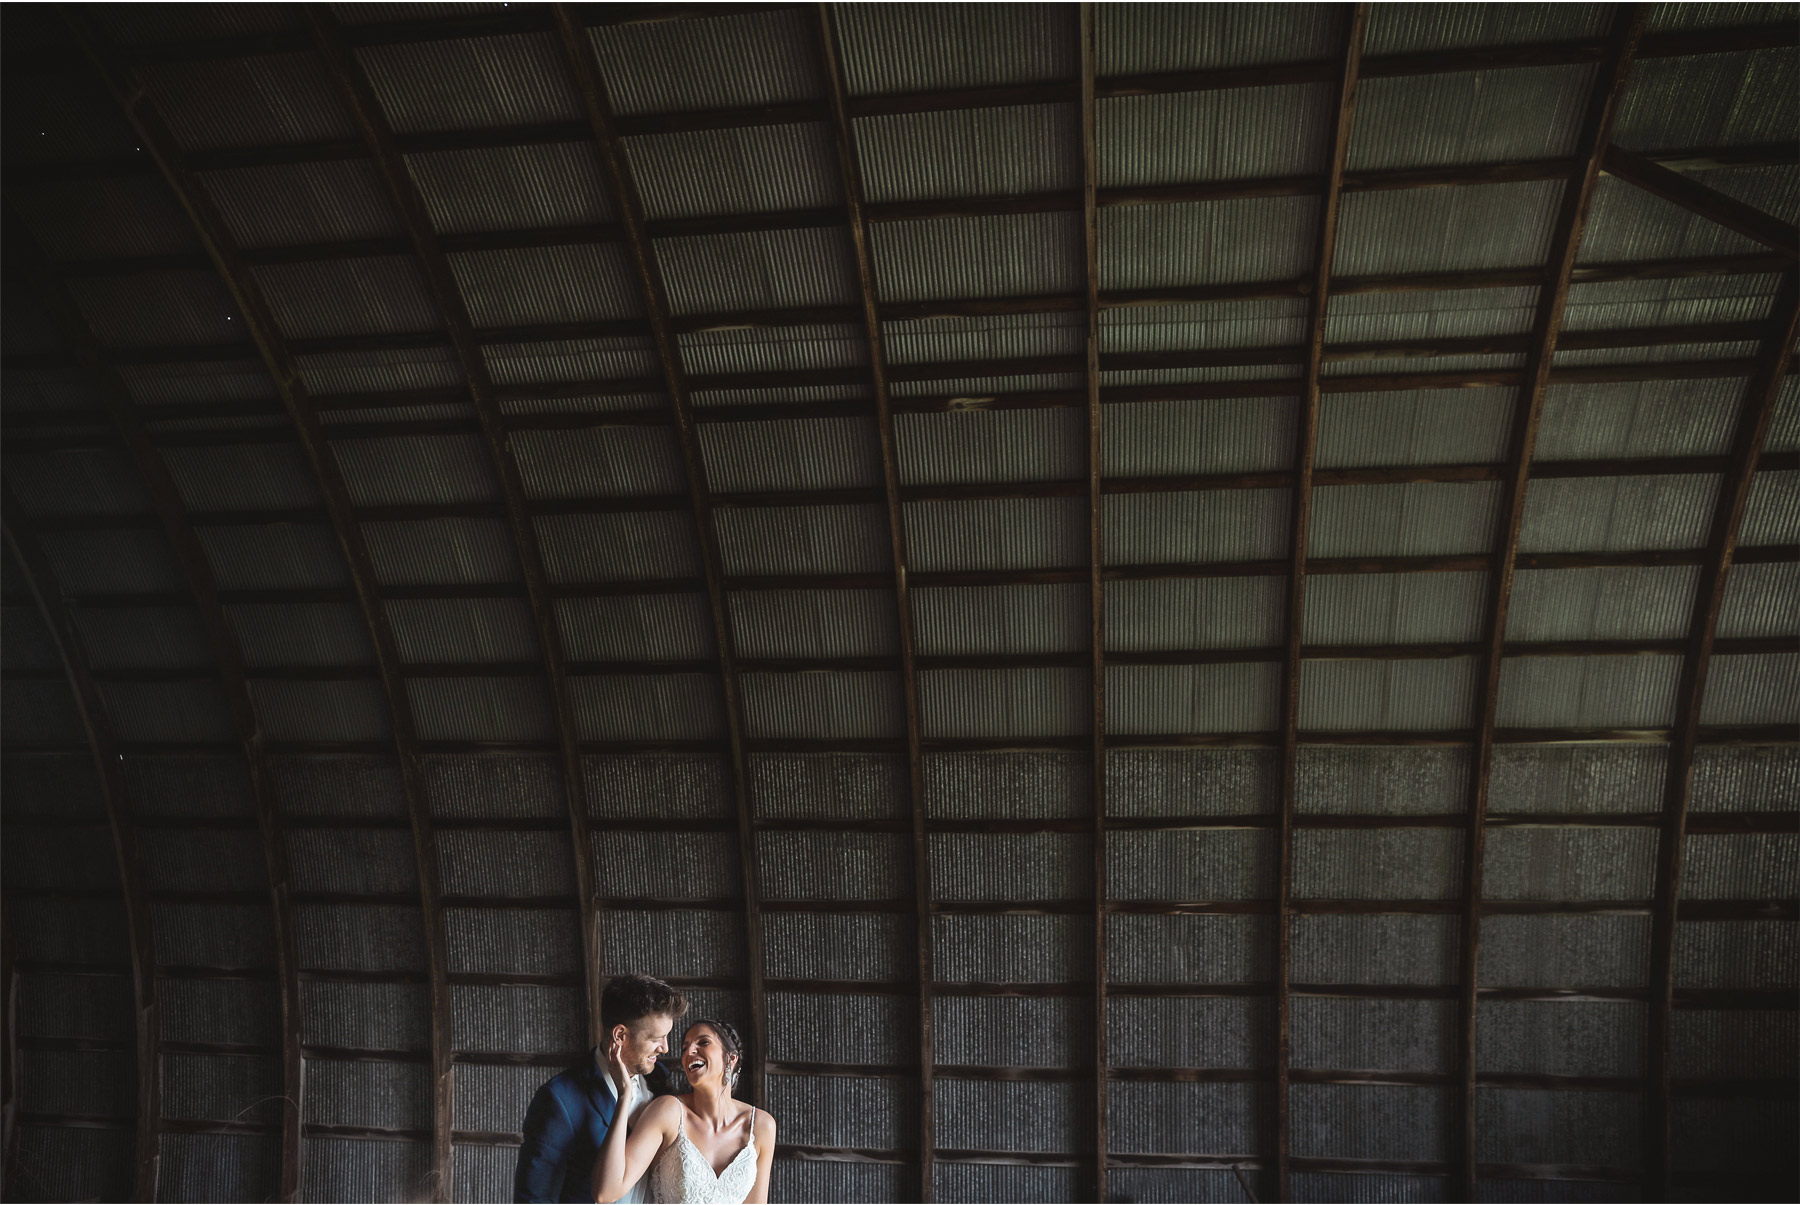 18-Minneapolis-Minnesota-Wedding-Andrew-Vick-Photography-Bavaria-Downs-Bride-Groom-Summer-Barn-Paige-and-Blake.jpg